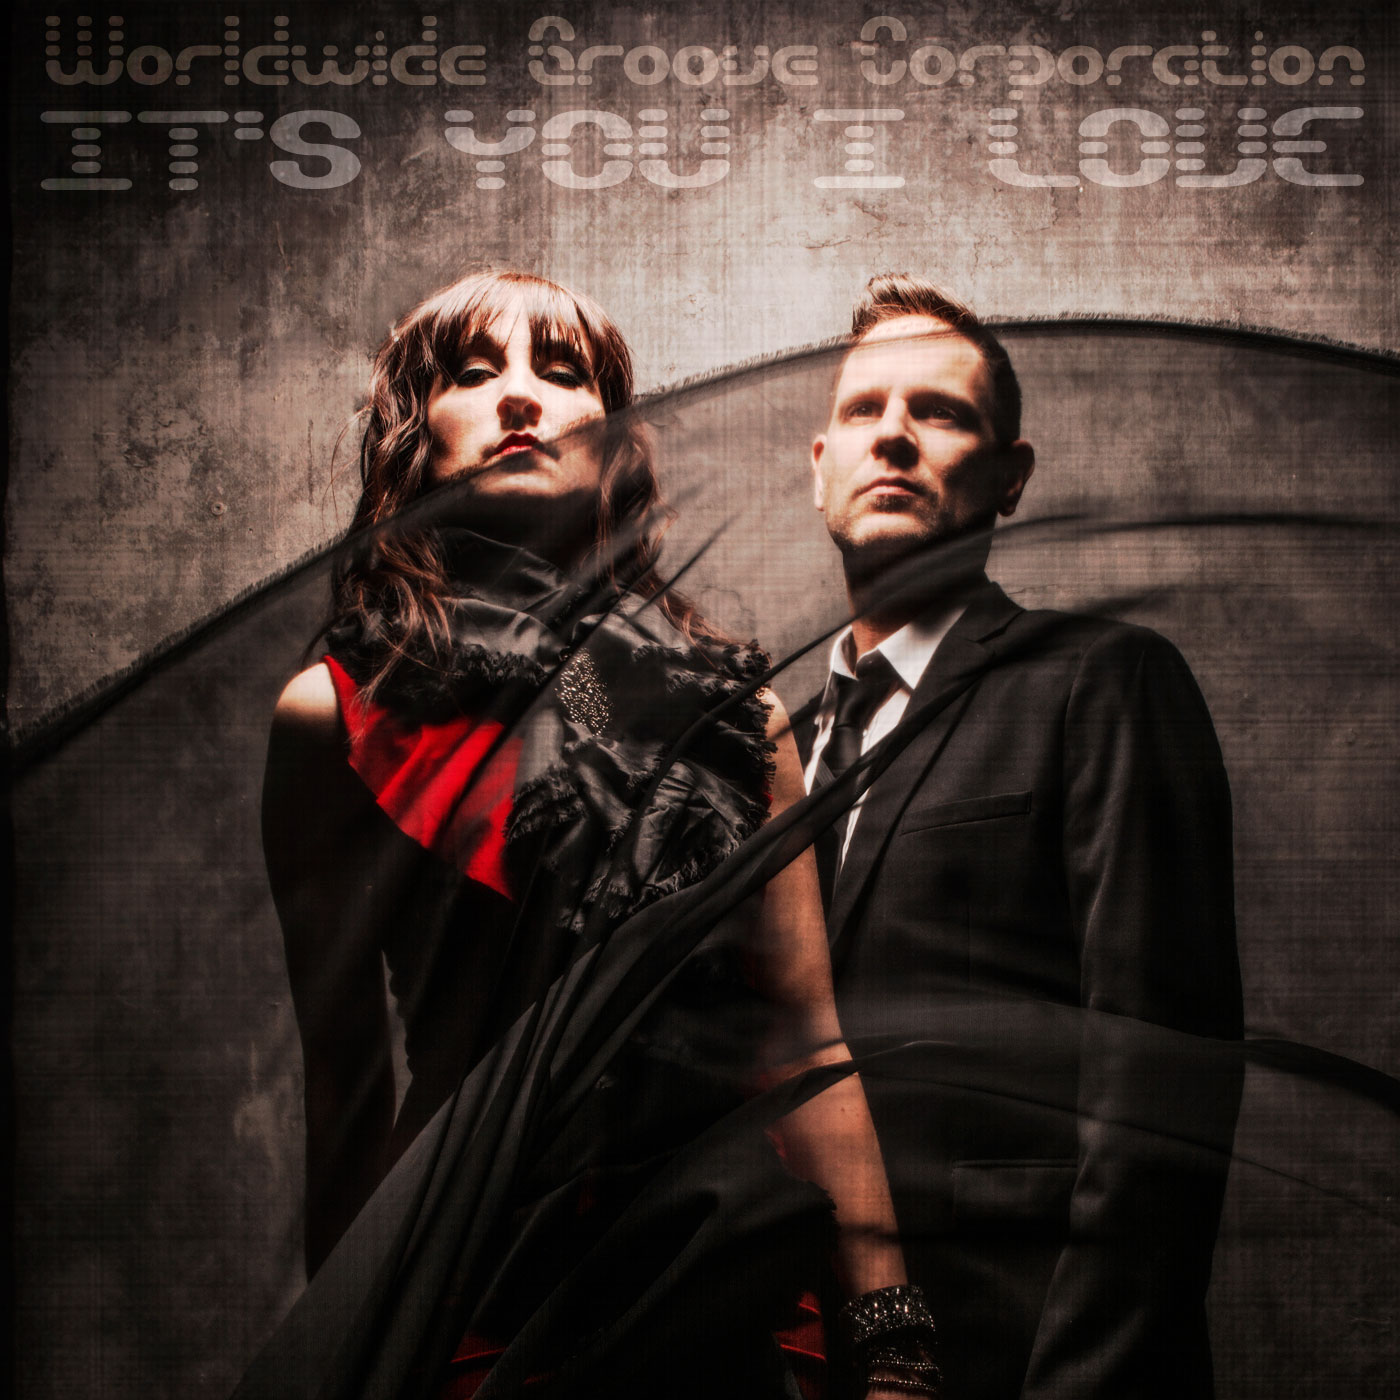 it's you i love by worldwide groove corporation